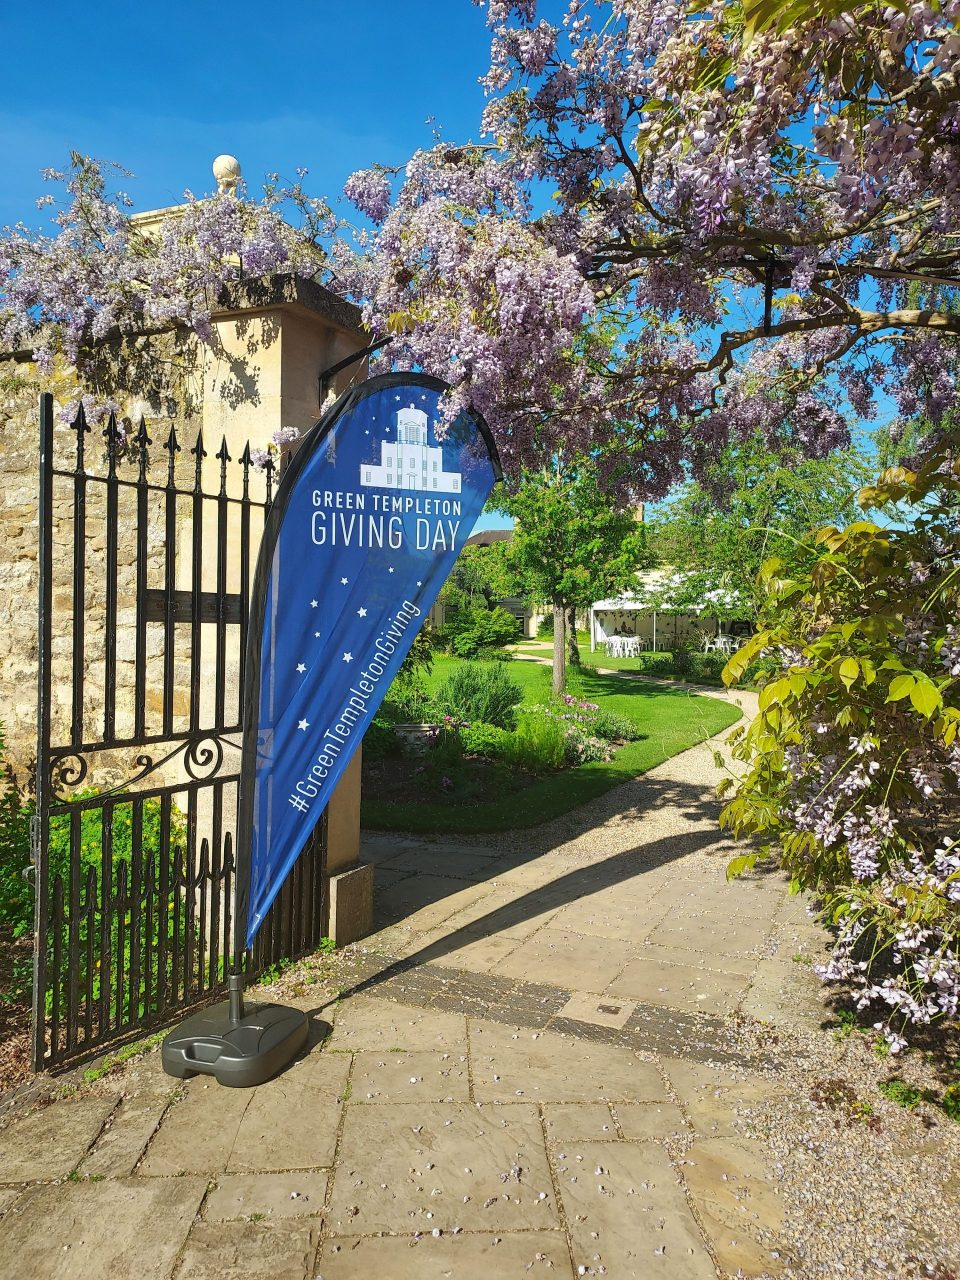 A blue flag with the words 'Green Templeton Giving Day' flies on a gate outside the Radcliffe Observatory